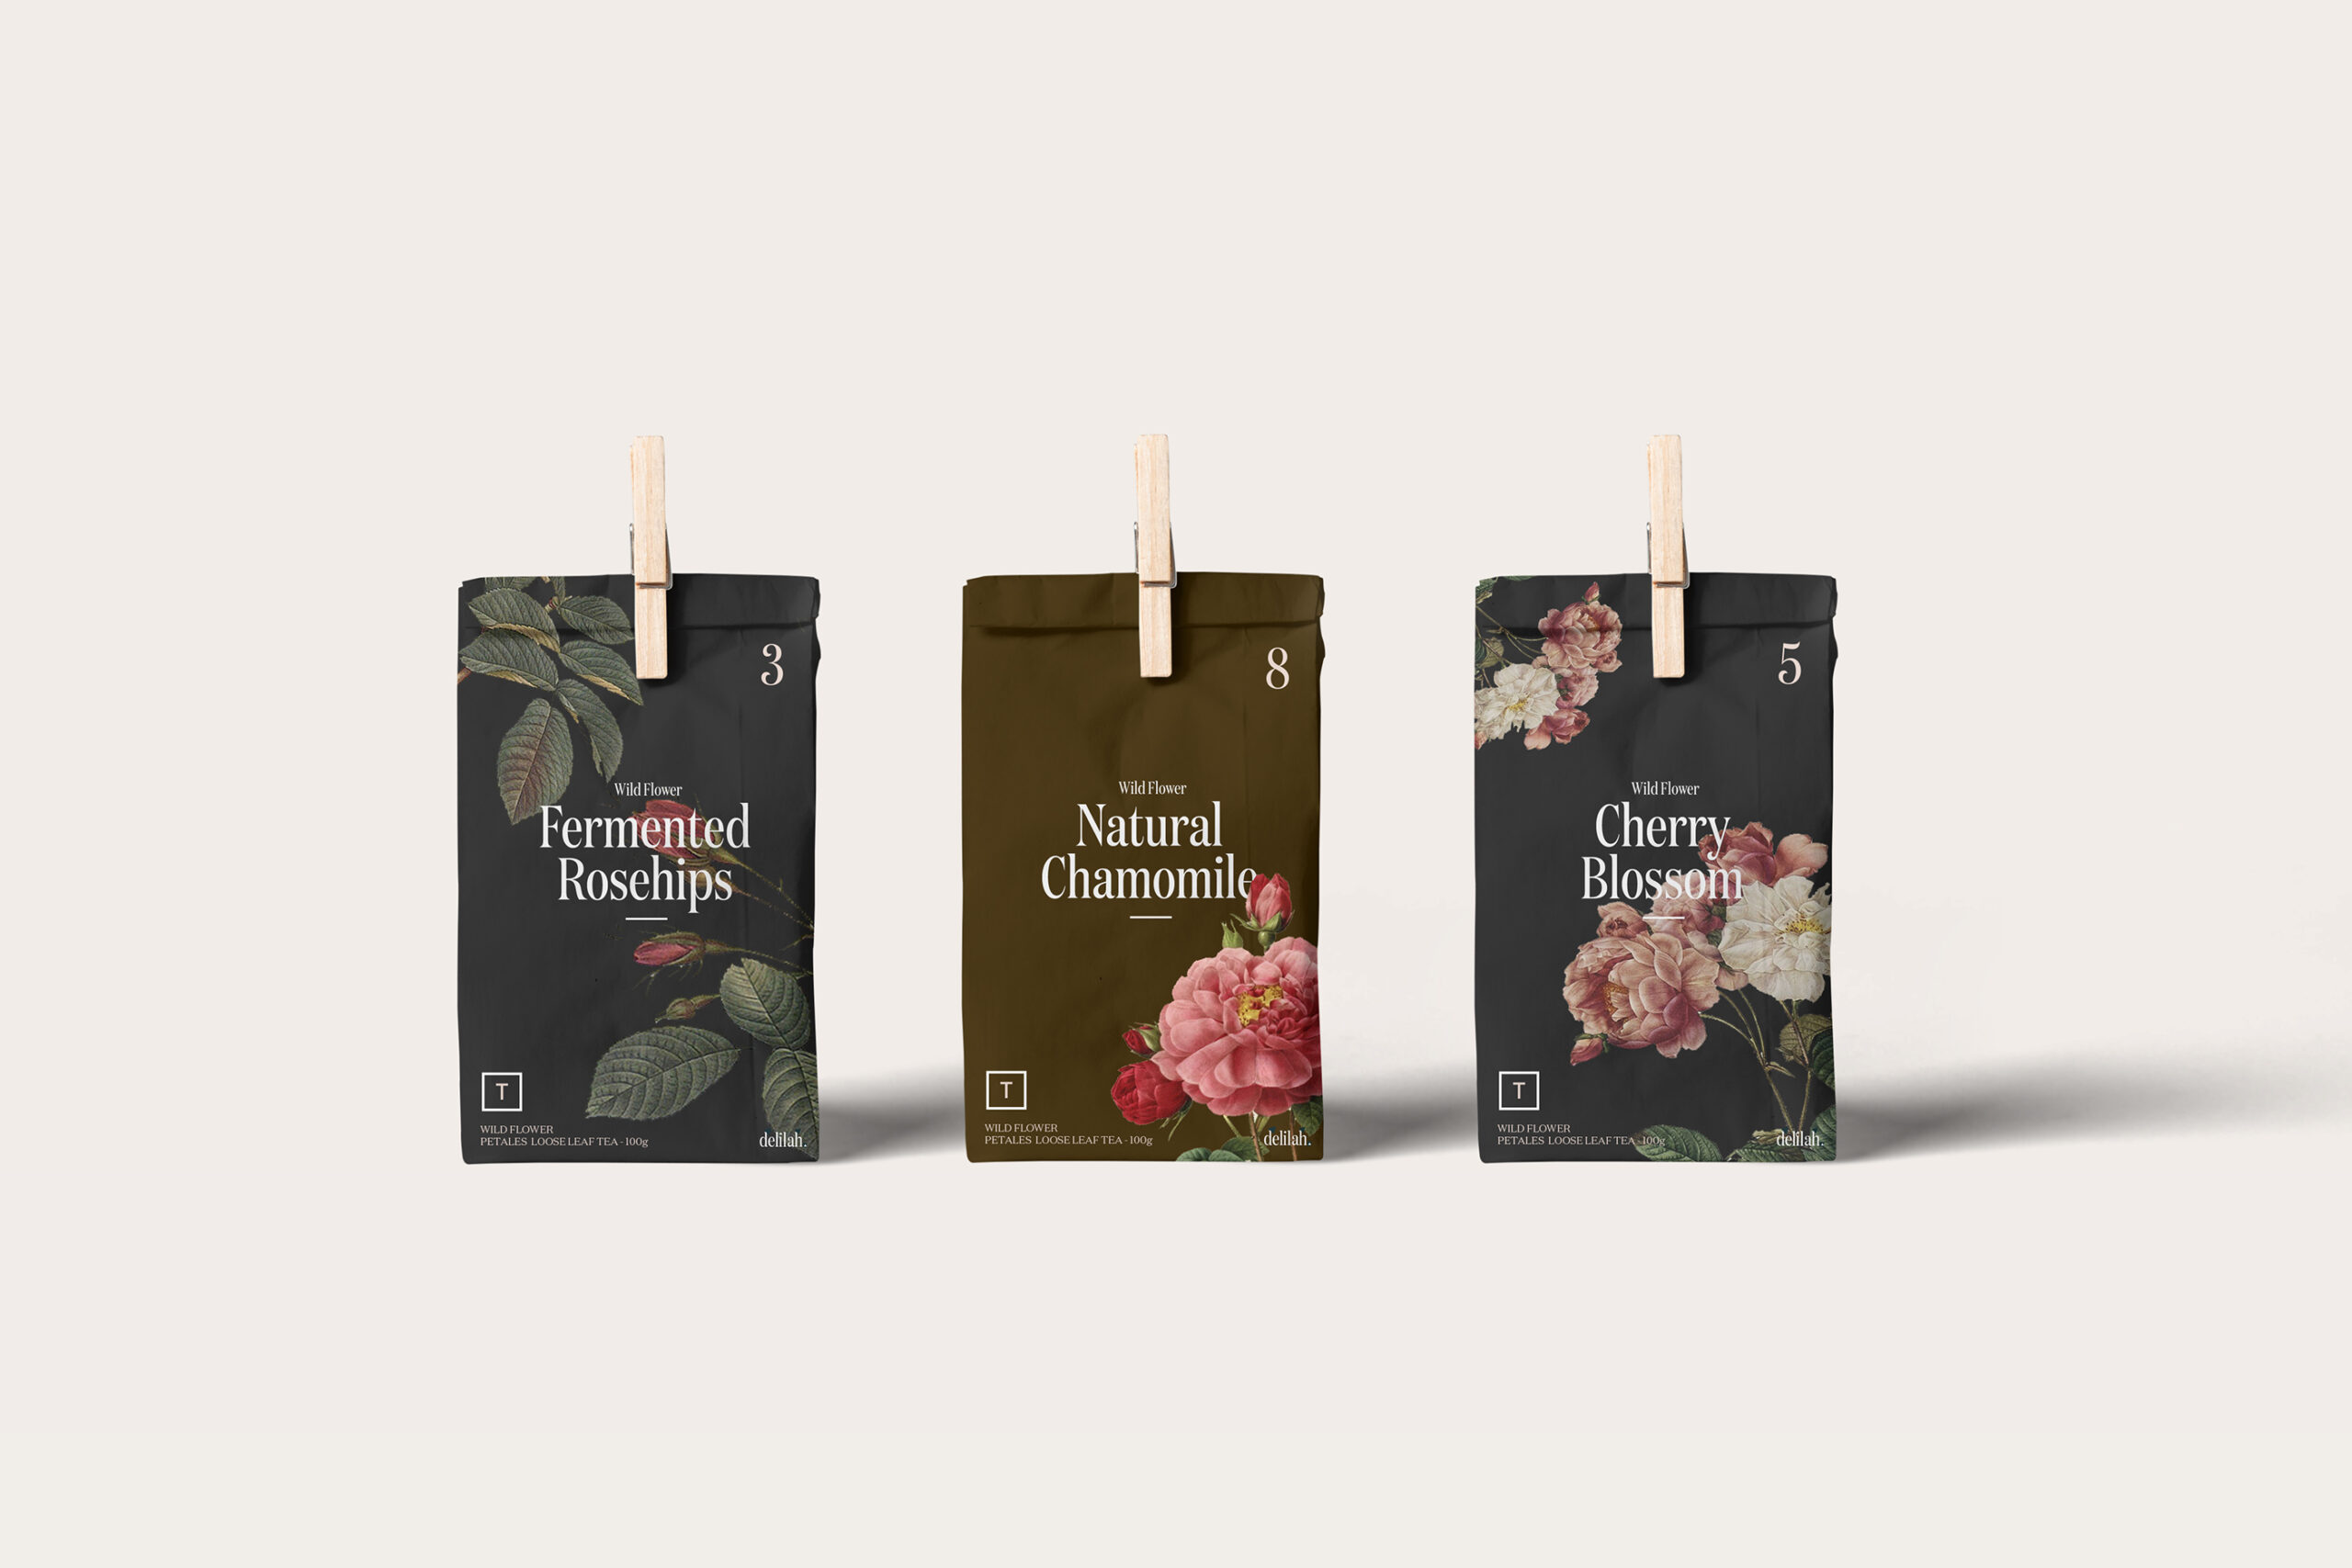 delilah - limited edition teas - the dieline